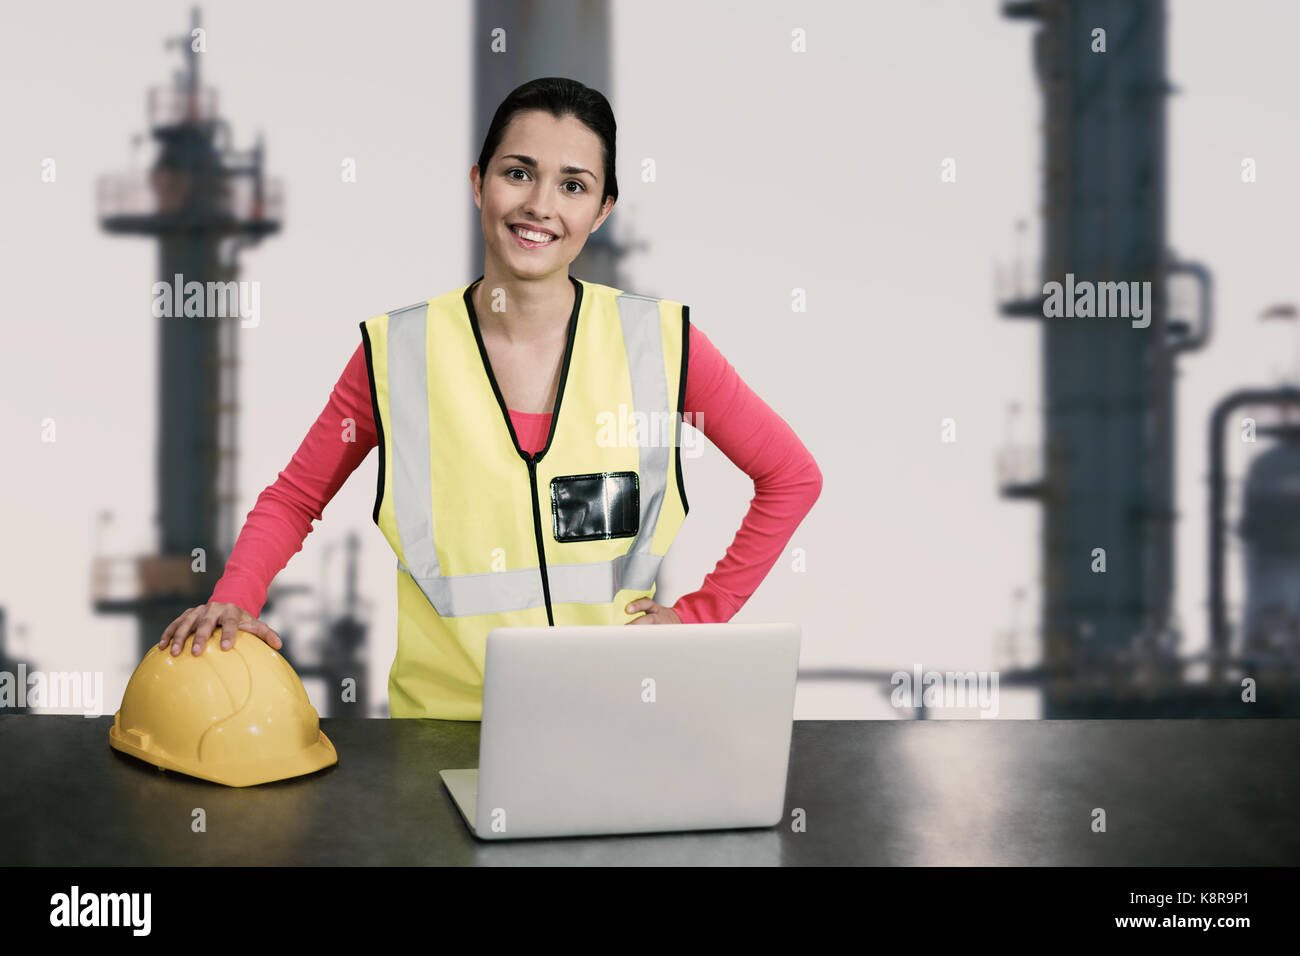 Portrait of female architect wearing reflective clothing against exterior of factory - Stock Image